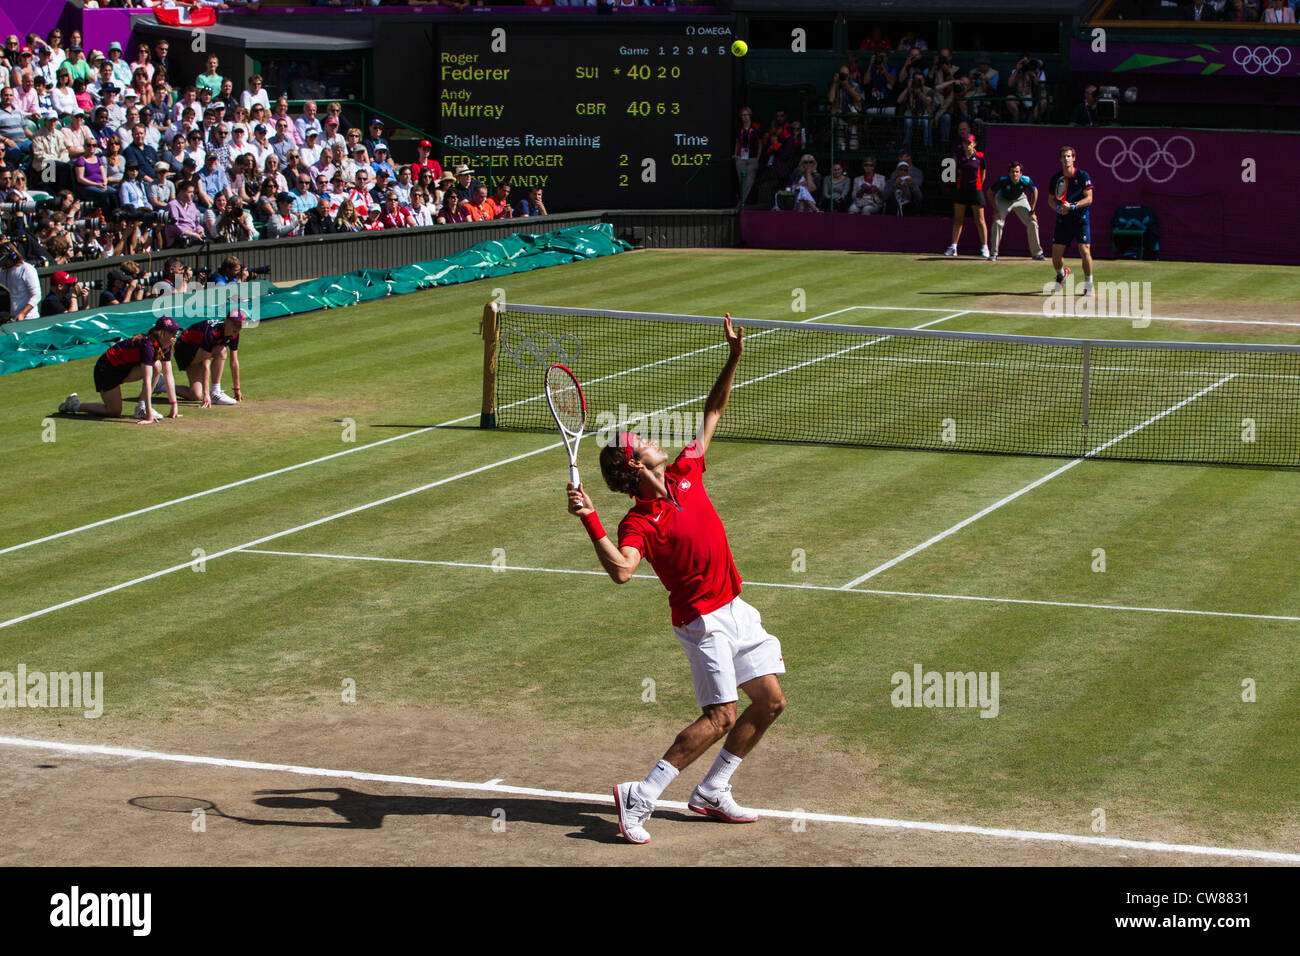 Roger Federer (SUI) wins the silver medal in the Men's Tennis Final at the Olympic Summer Games, London 2012 - Stock Image